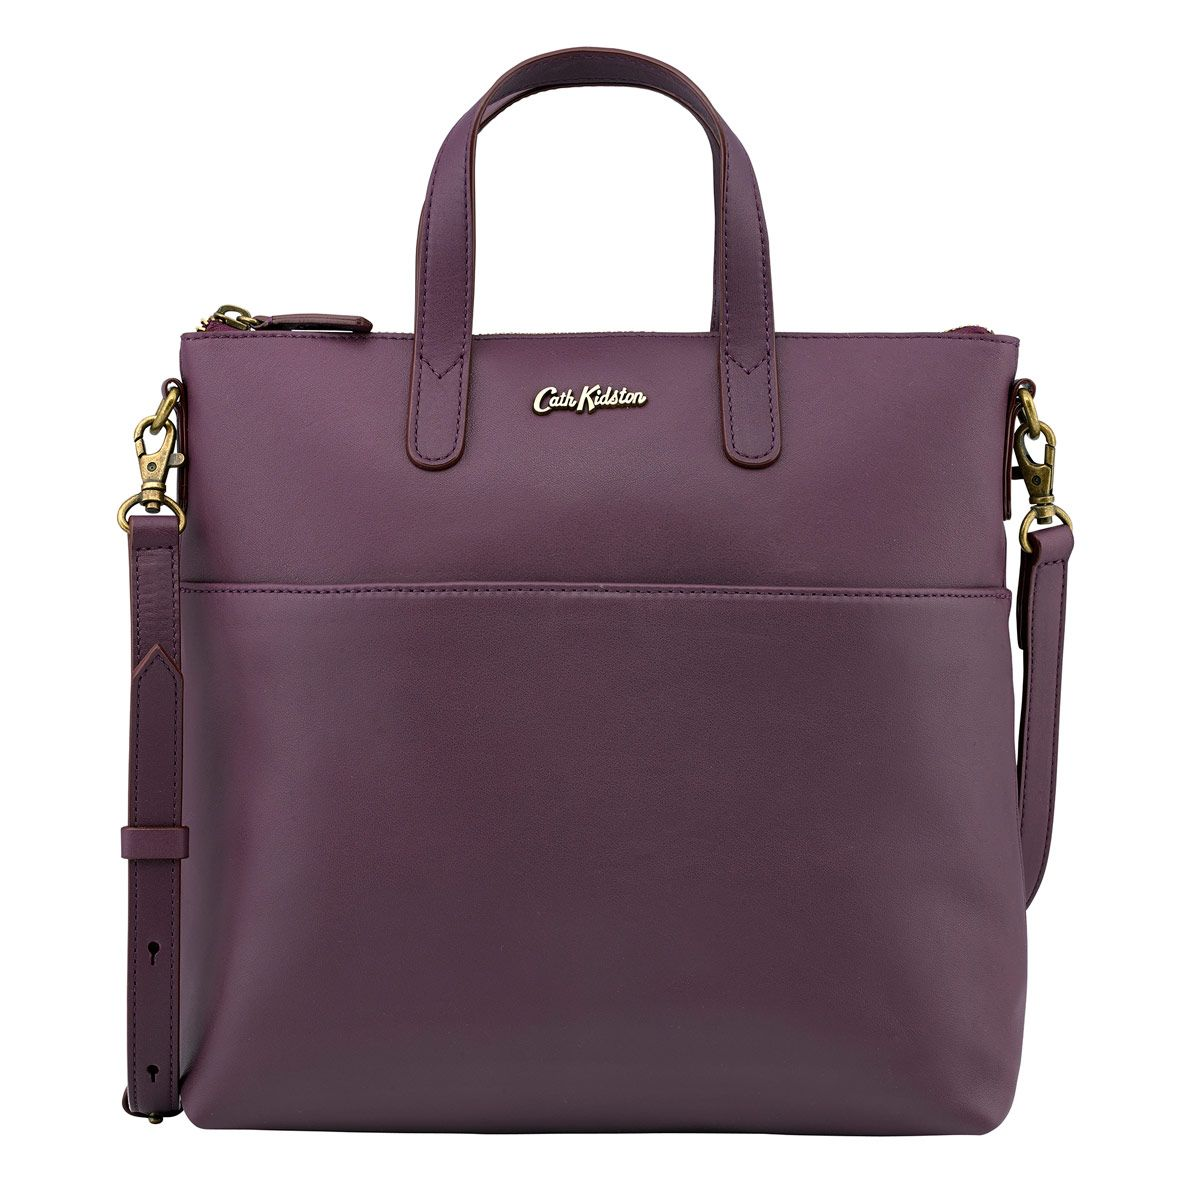 78d89376123c Mini Leather Cross Body Tote | Leather Bags | CathKidston | Cath ...